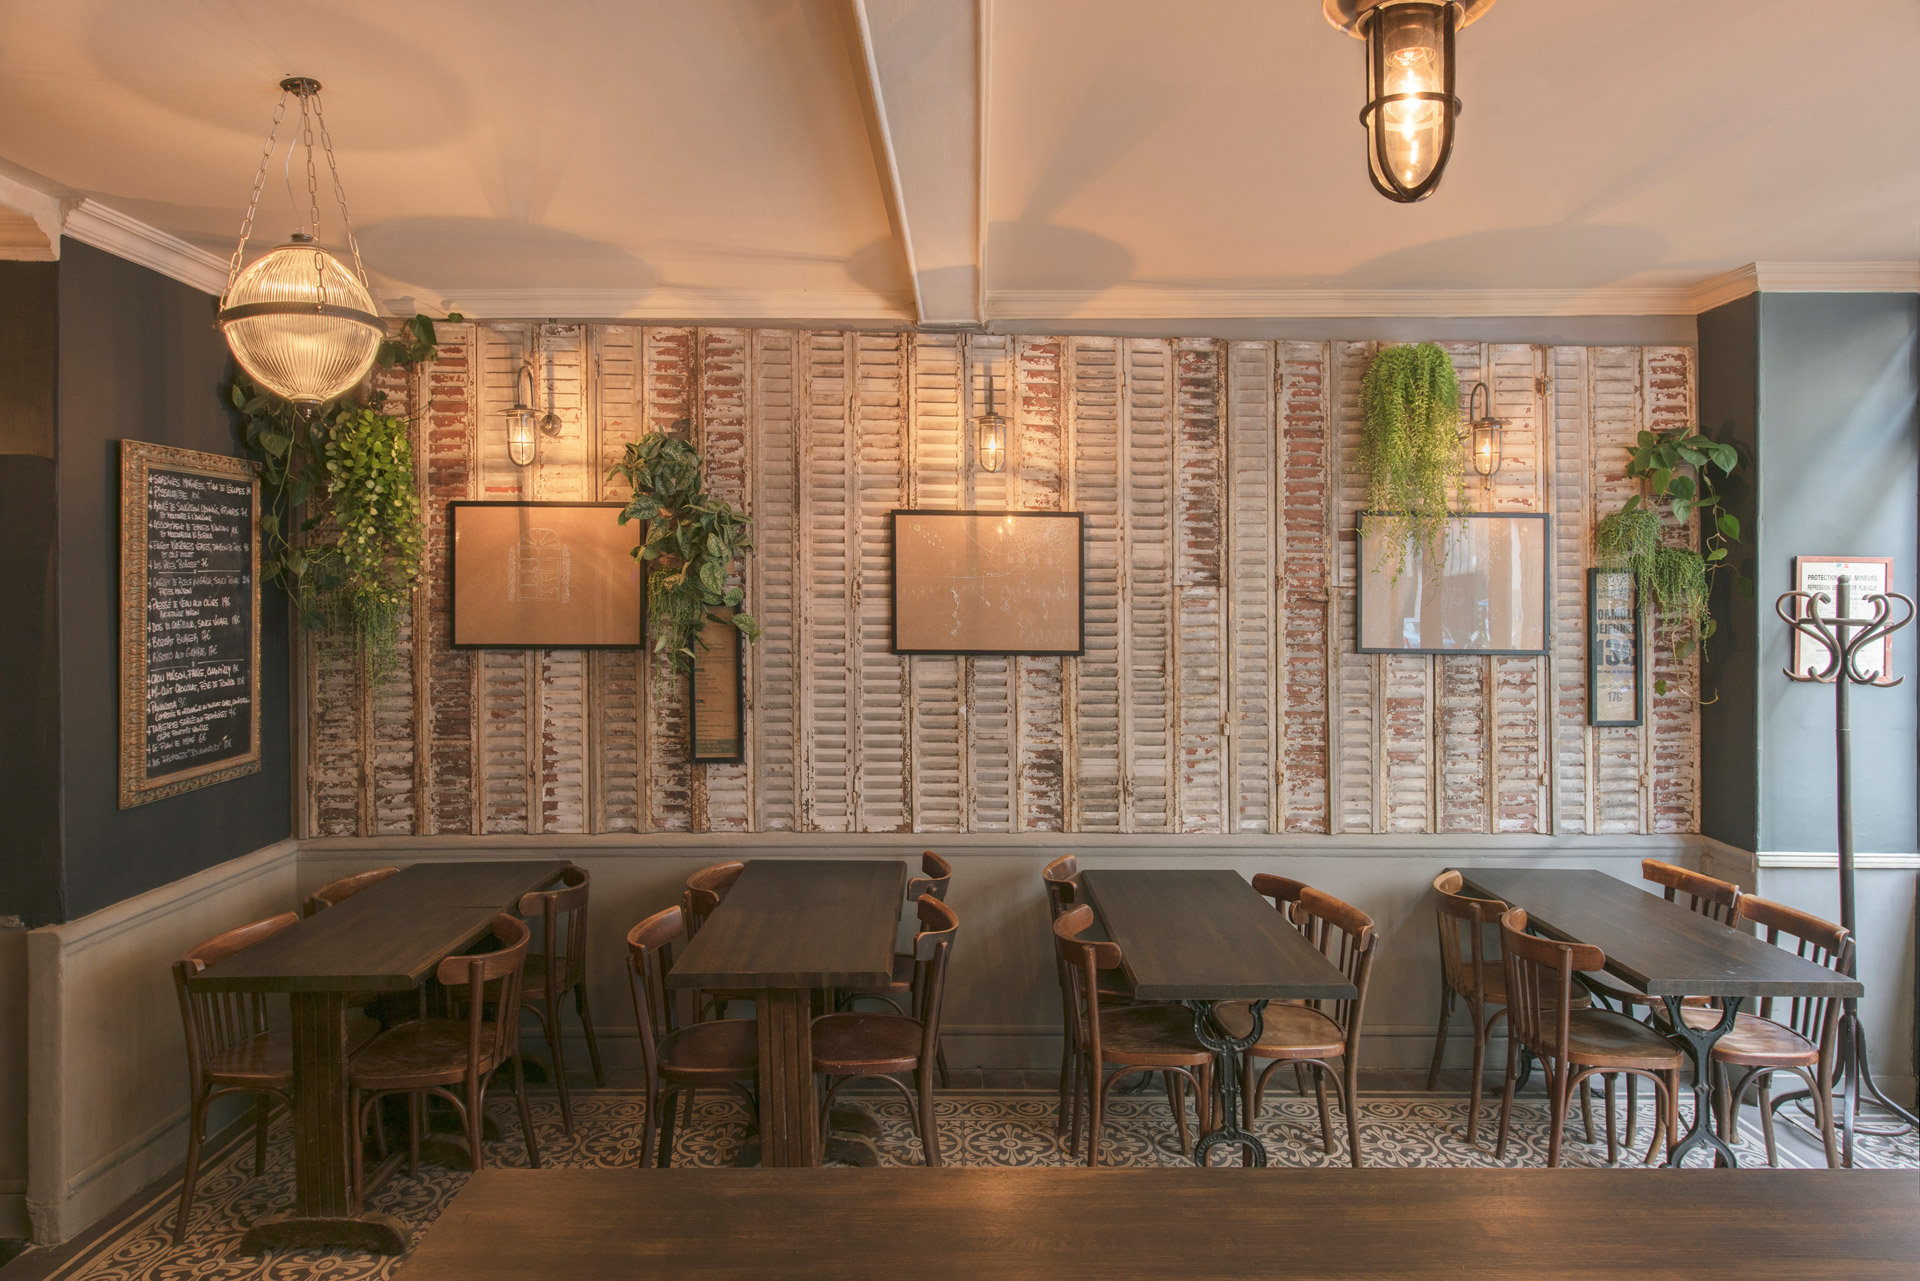 Our well glass wall lights help create an intimate dining experience at this Parisian restaurant